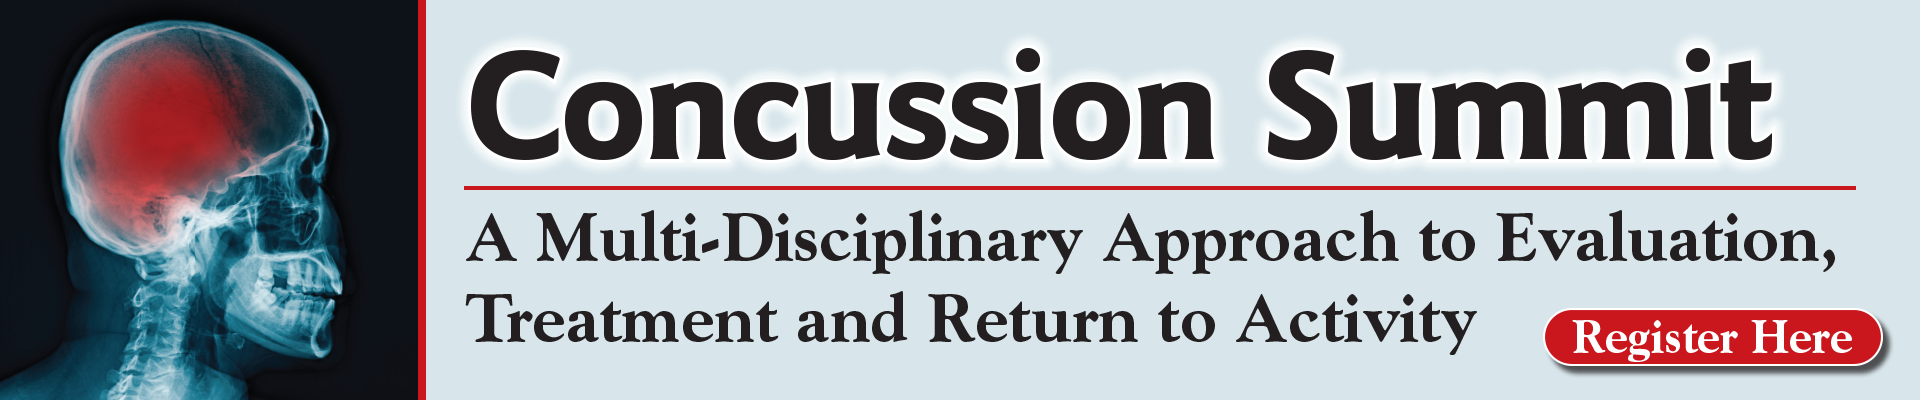 Concussion Summit: A Multi-Disciplinary Approach to Evaluation, Treatment and Return to Activity